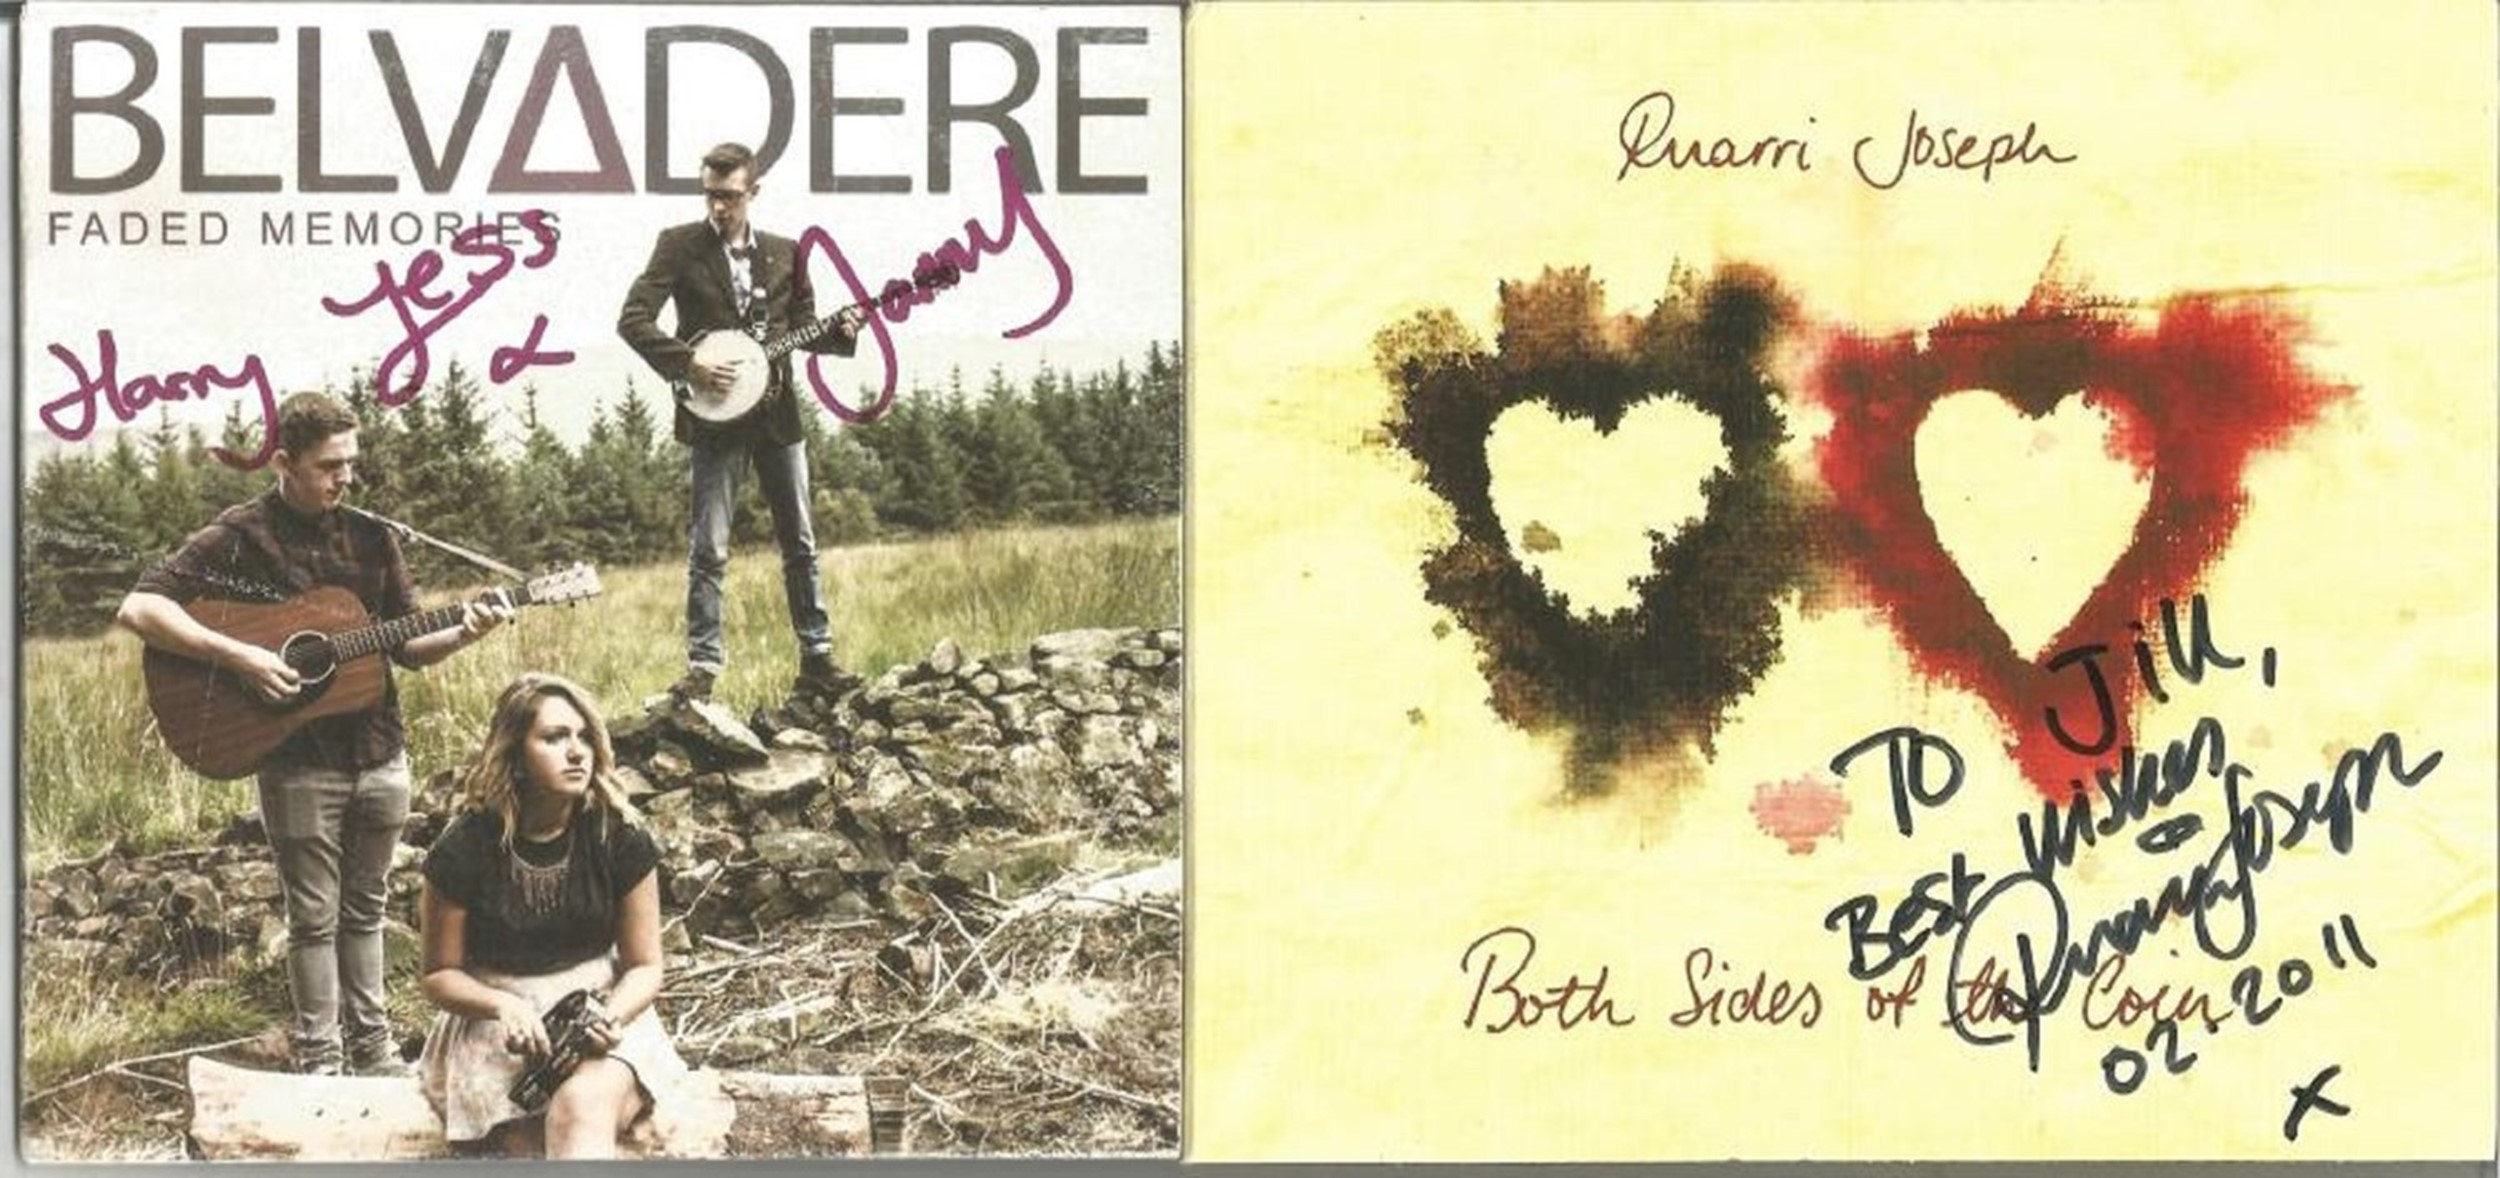 6 Signed CDs Including Ruarri Joseph Both Sides of the Coin Disc Included, Belvedere Faded